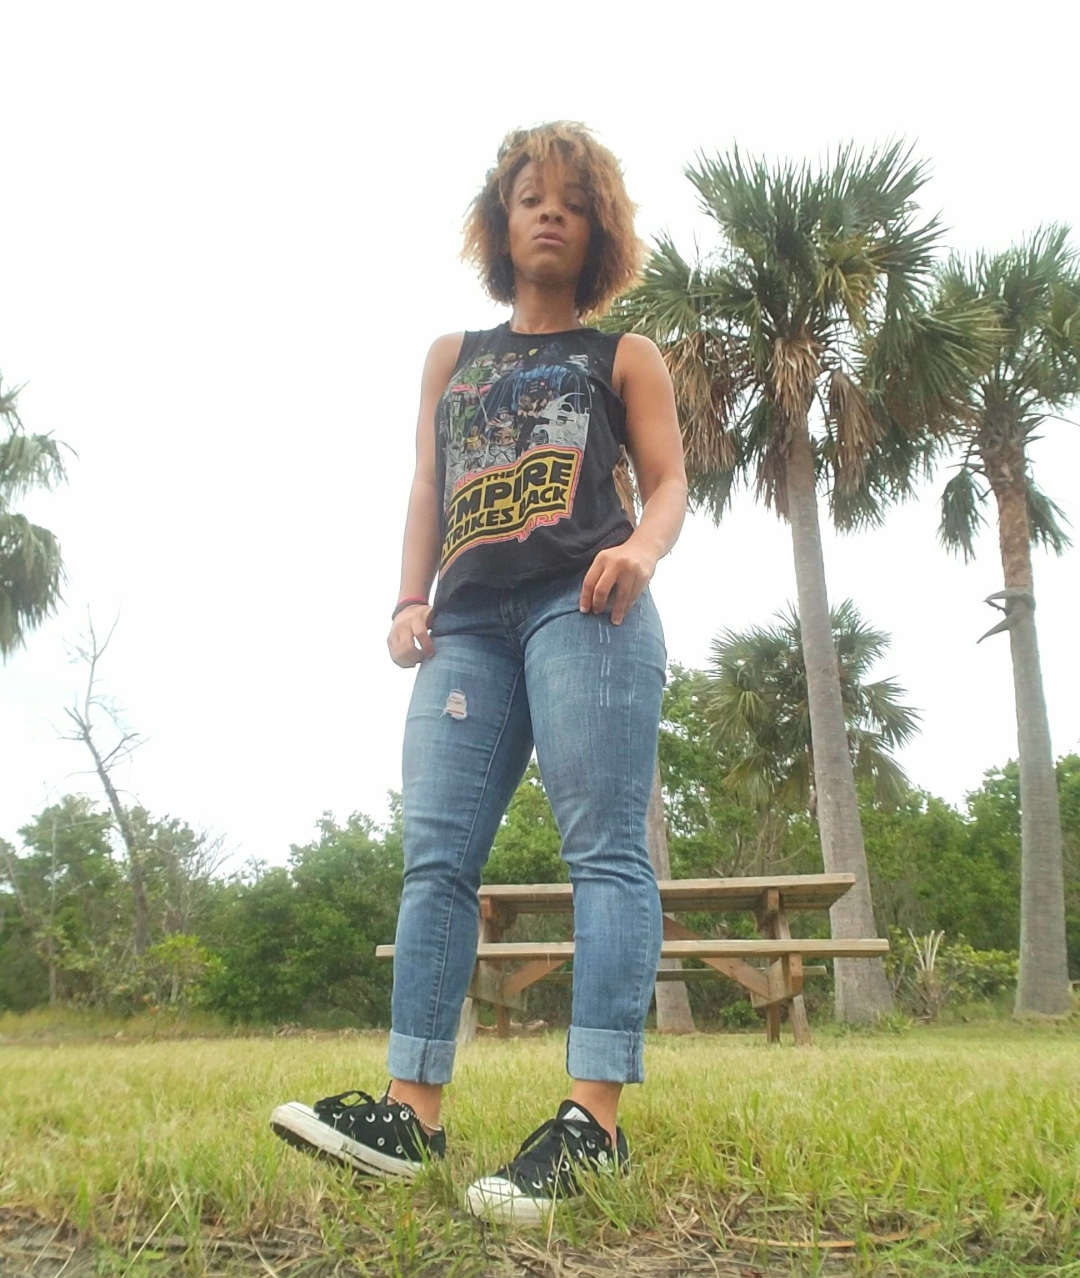 iwannabealady.com distressed jeans and star wars tee shirt converse south florida lifestyle blogger fashion outfit post